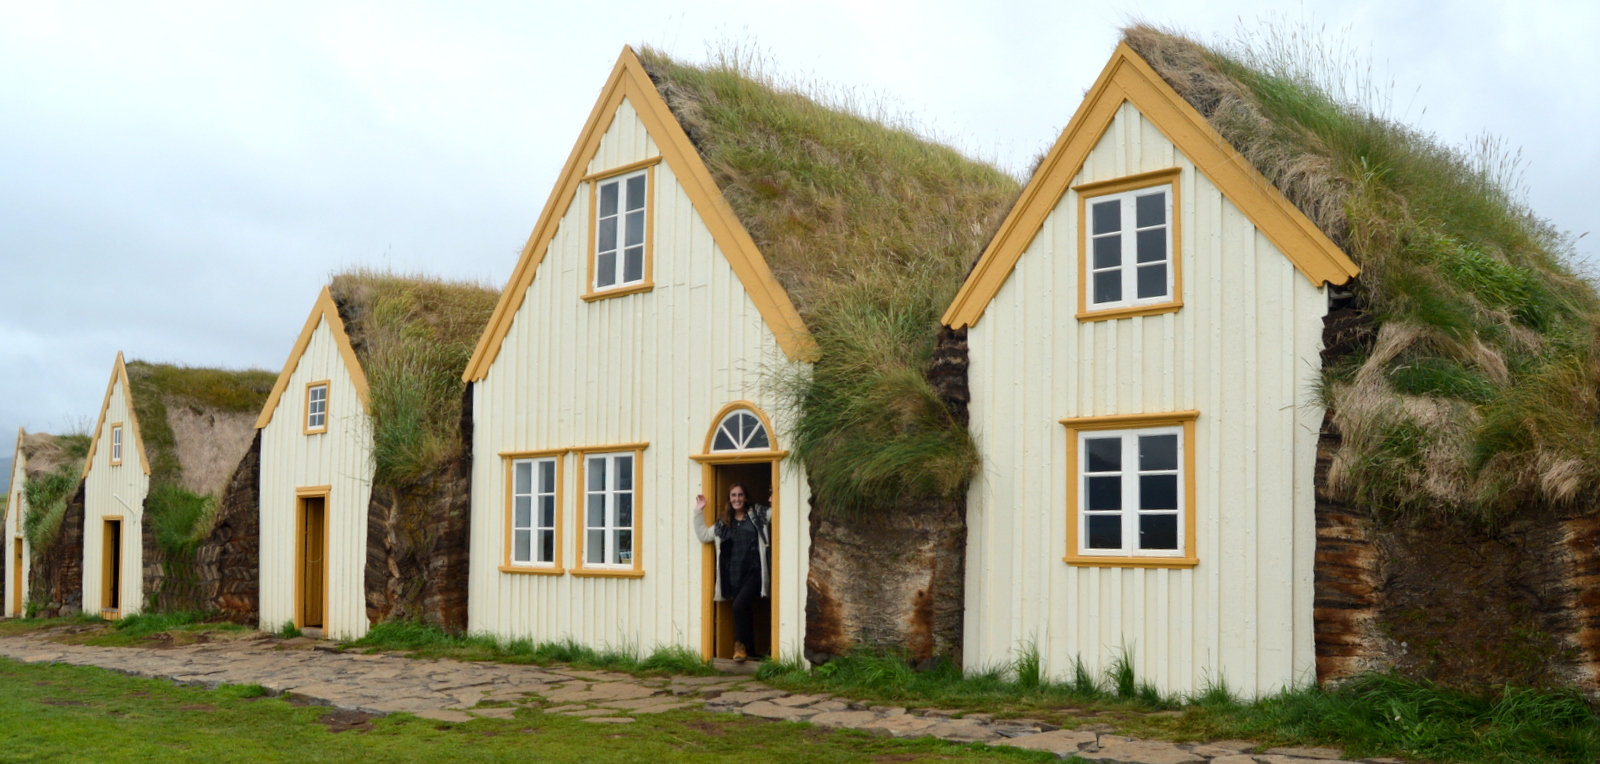 Glaumb R Turf House In North Iceland Guide To Iceland